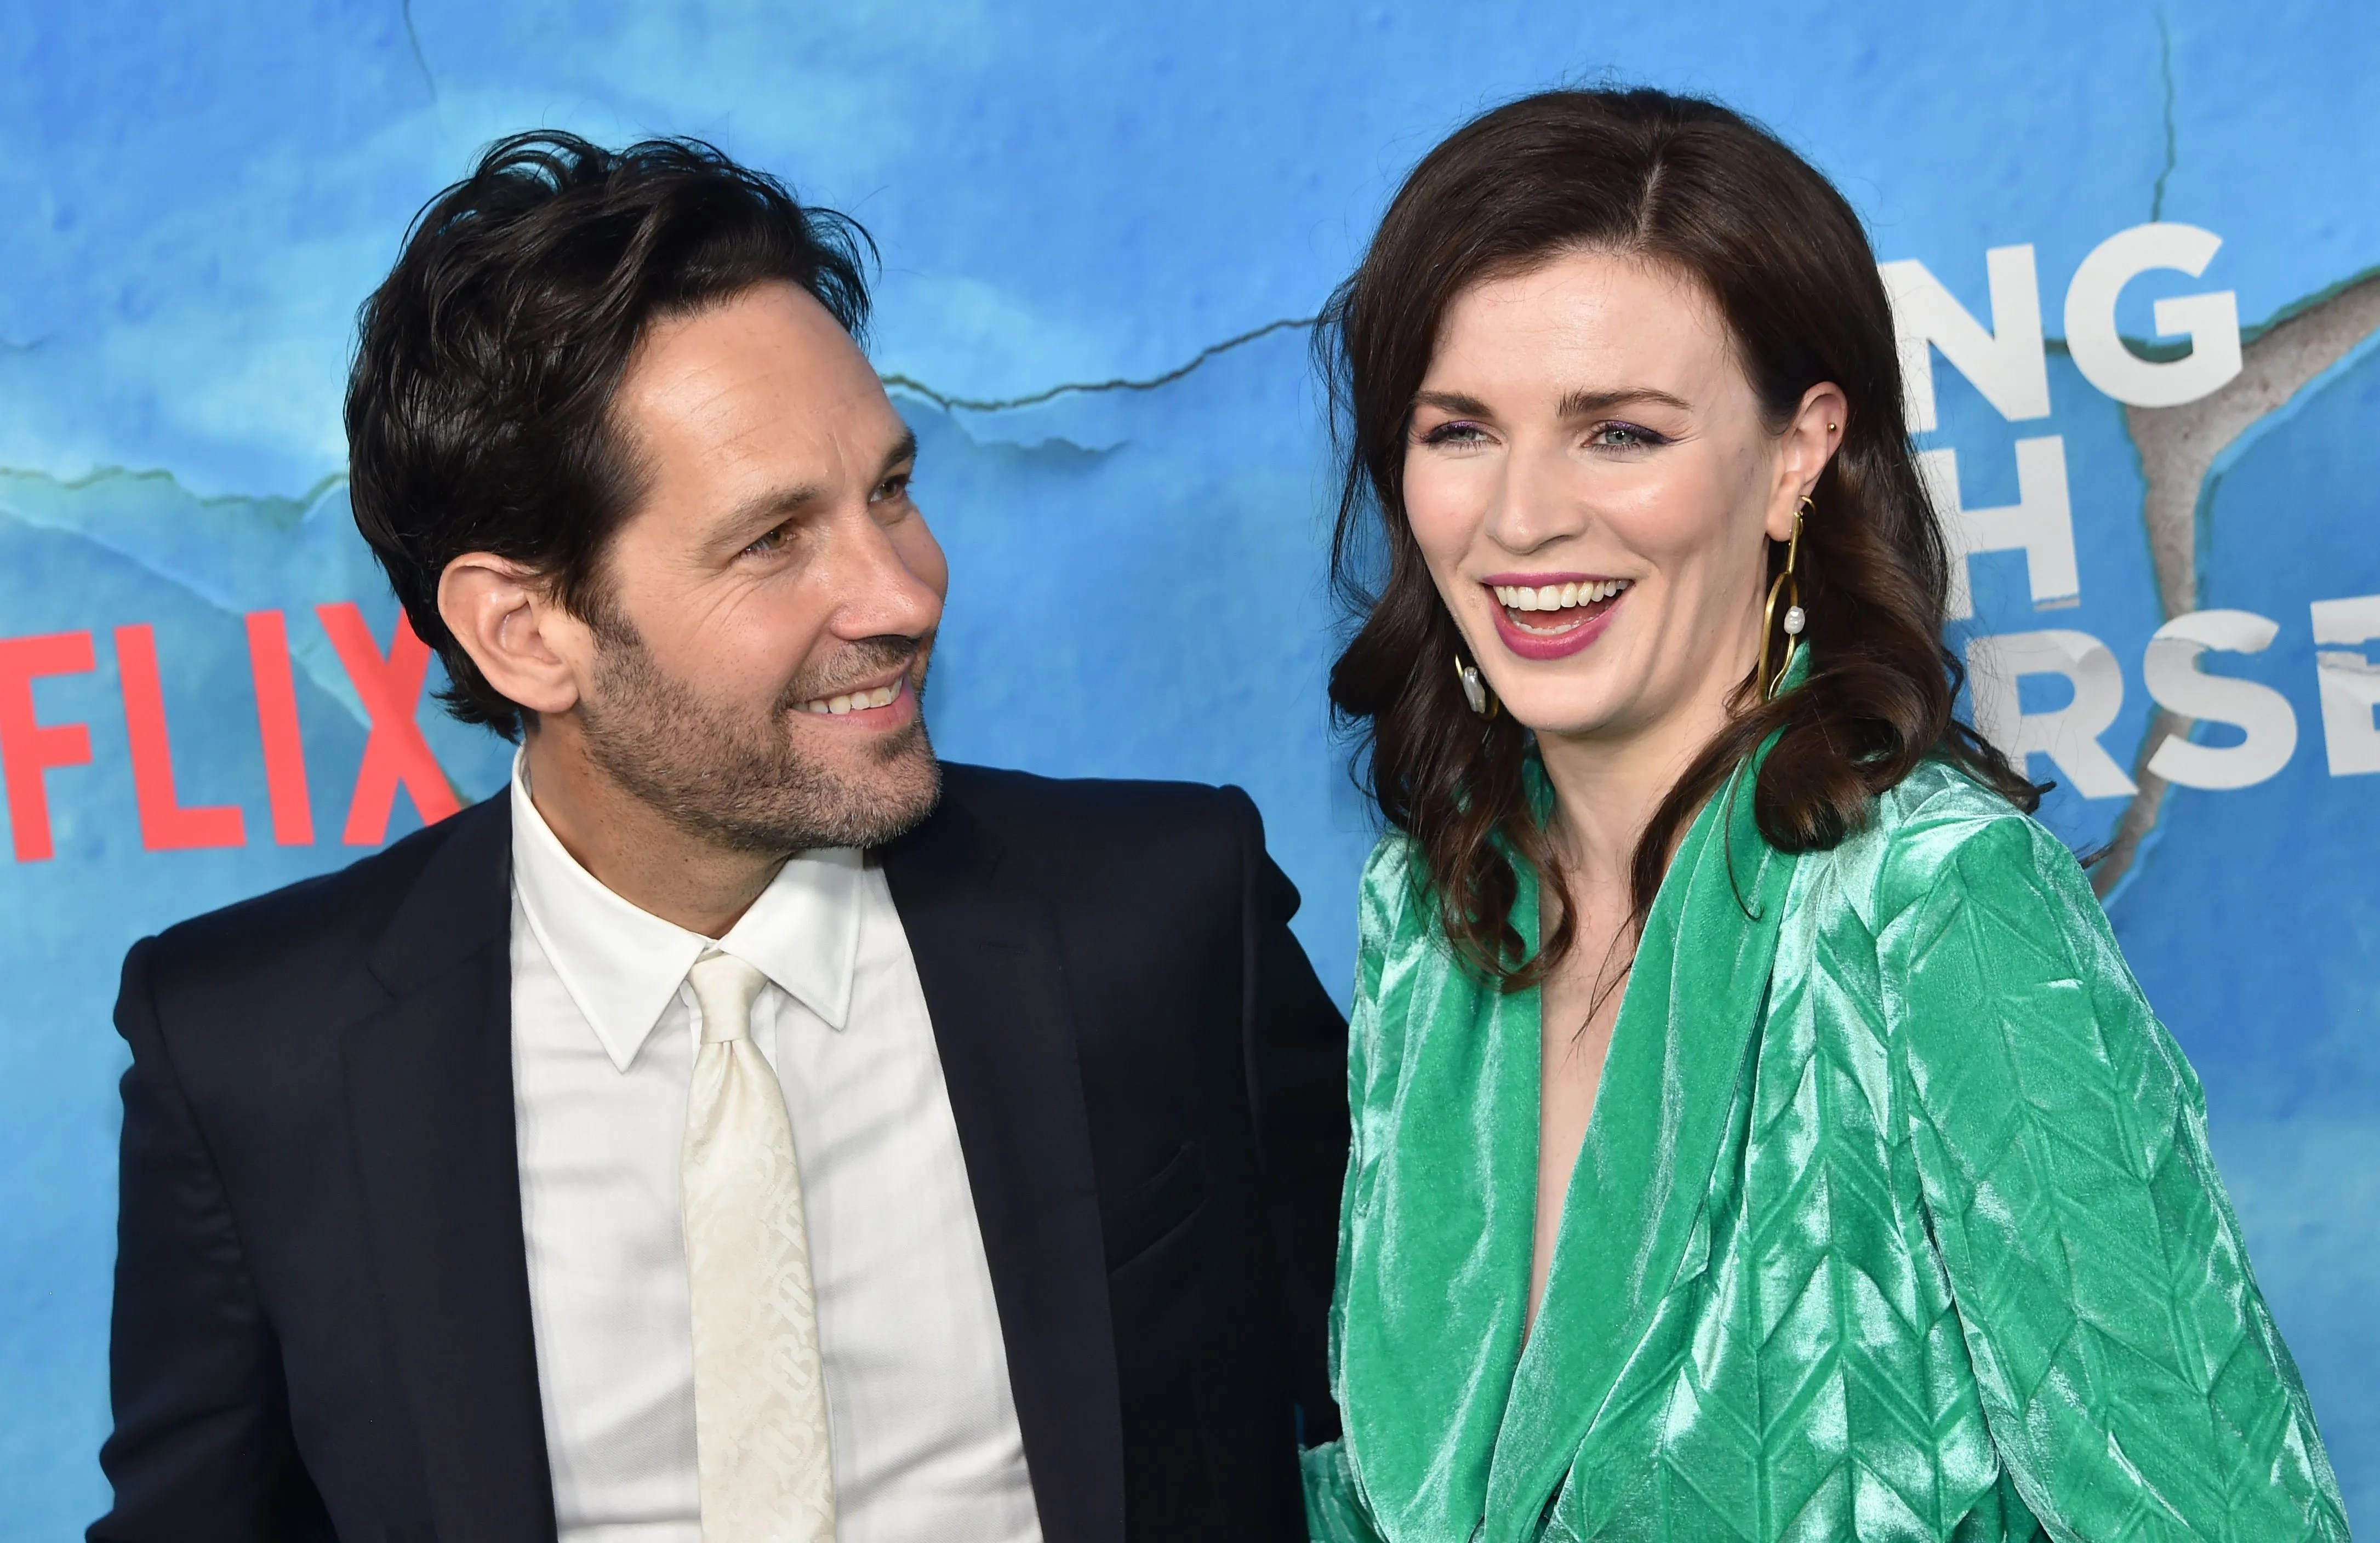 Paul Rudd S Netflix Show Living With Yourself Snags Tom